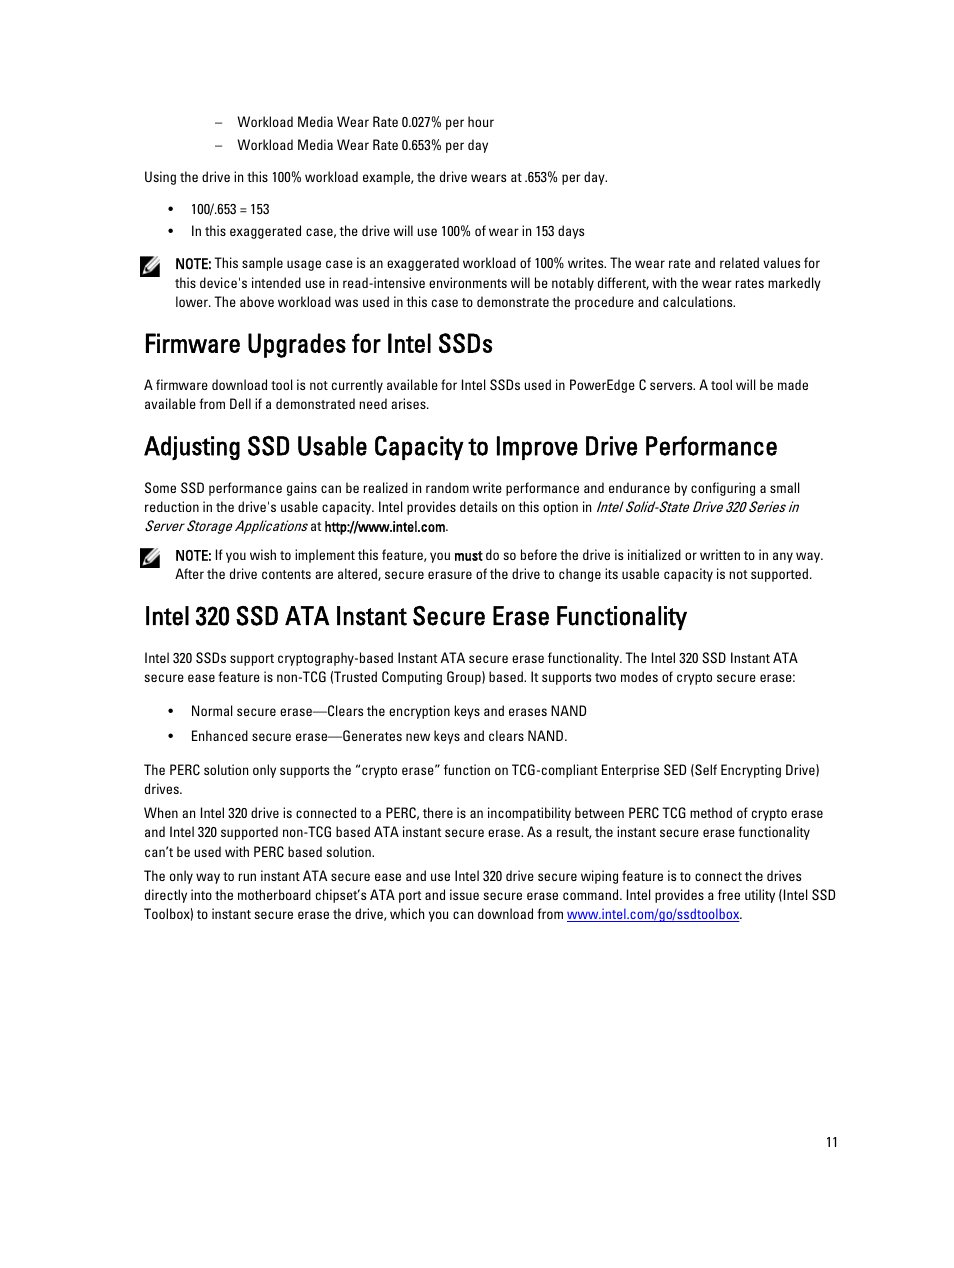 Firmware upgrades for intel ssds | Dell PowerEdge C6220 User Manual